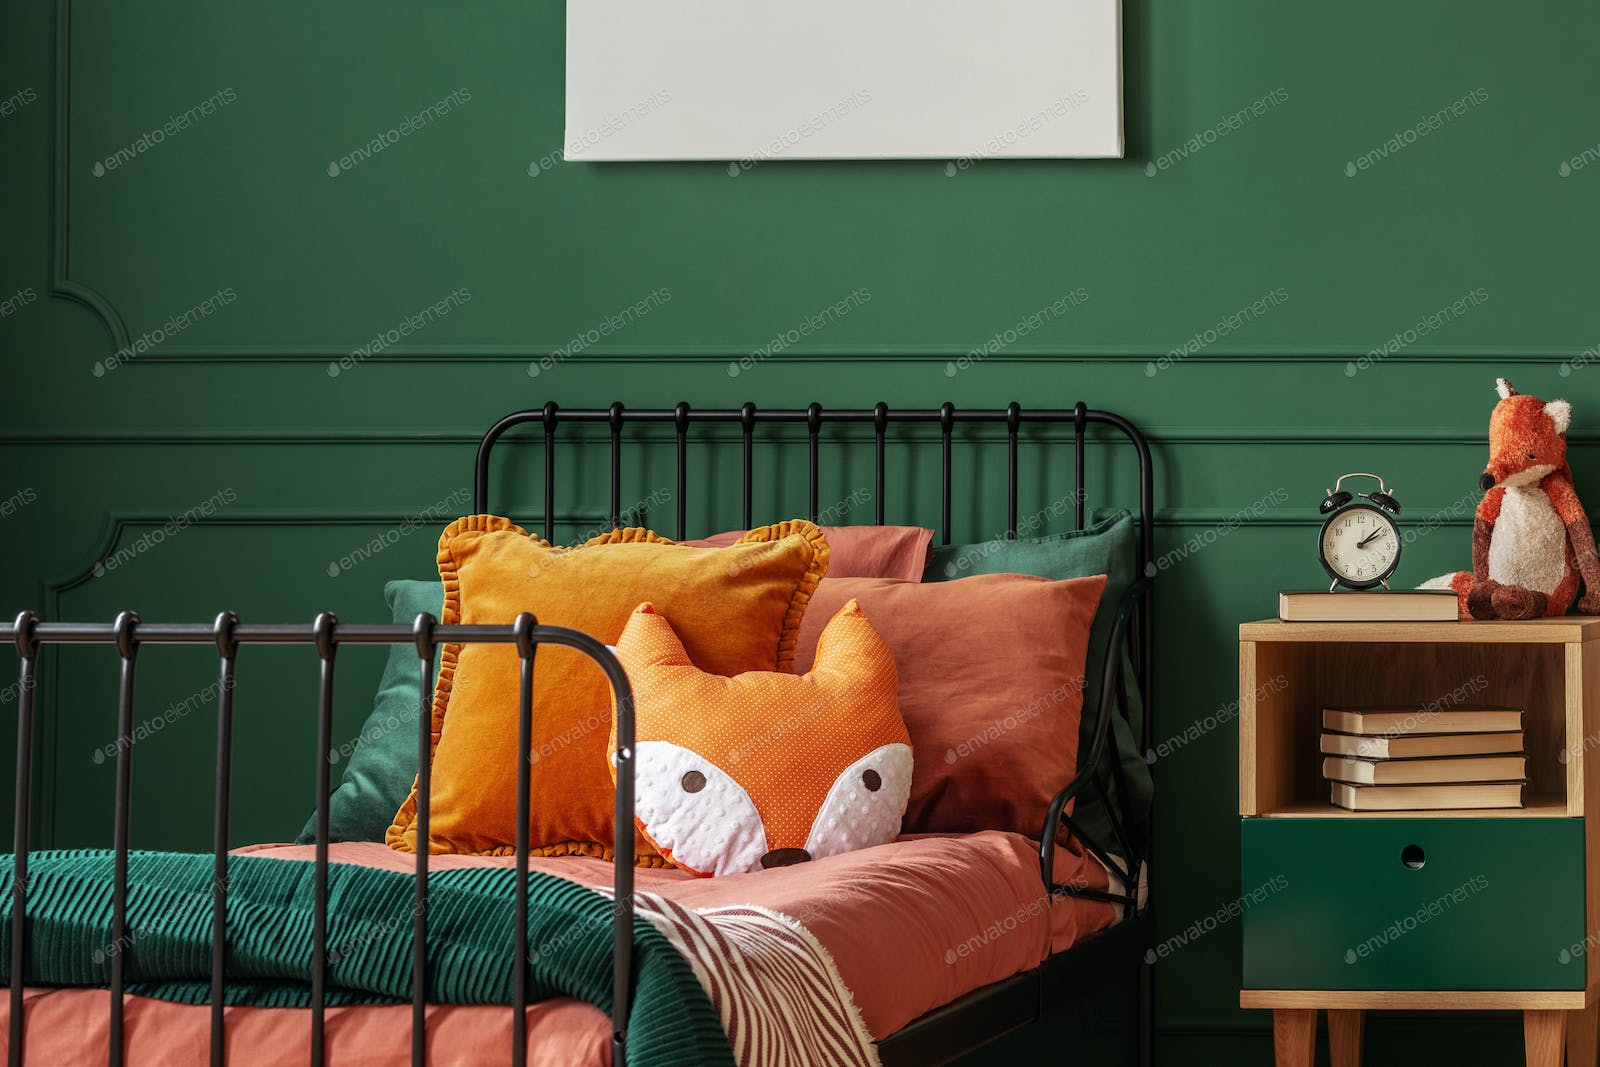 Orange pillow on single bed in dark green teenager bedroom photo by  bialasiewicz on Envato Elements